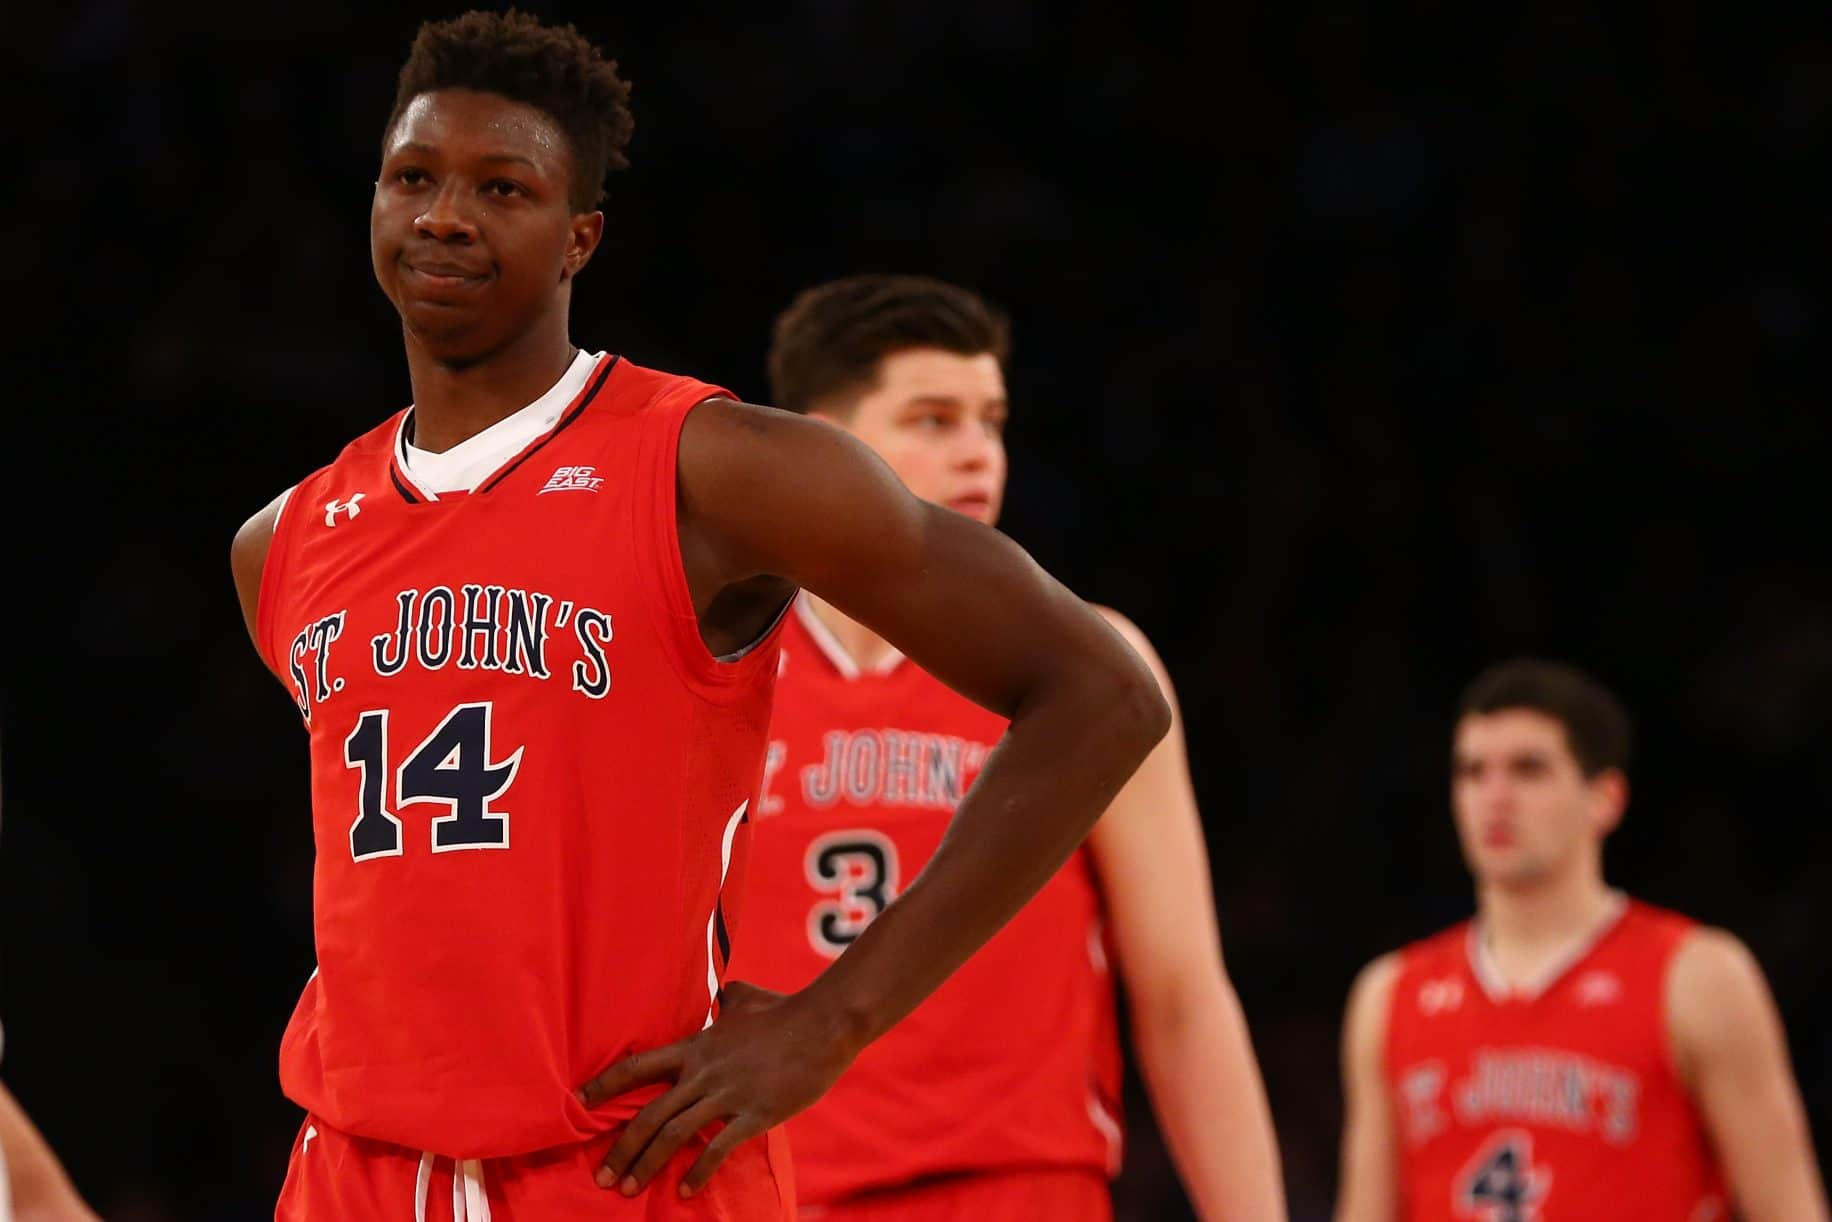 St. John's Basketball: Rutgers Exhibition About More Than Hoops 2